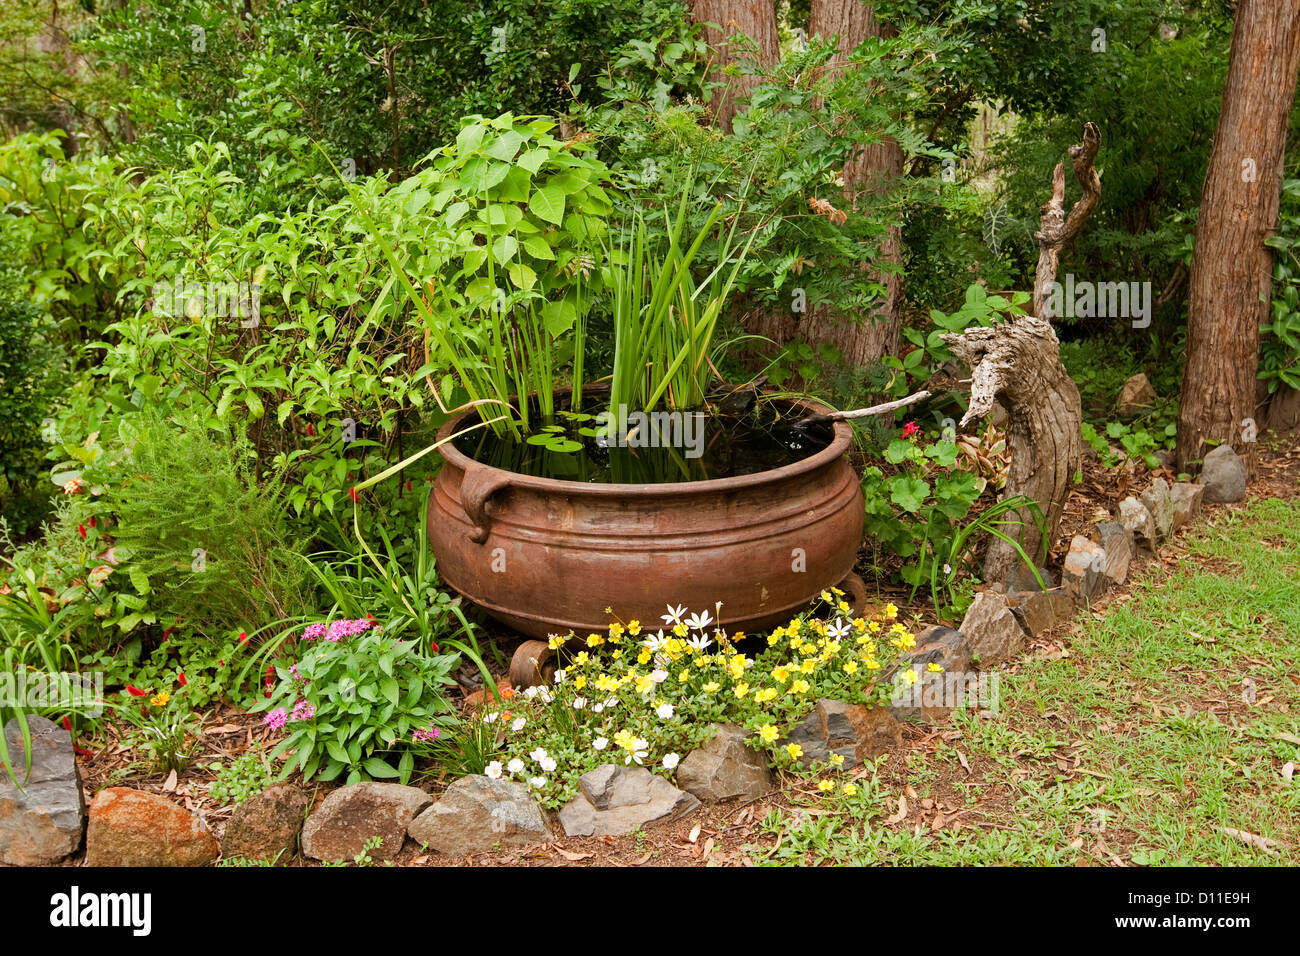 Ornate garden pond - large rusty cauldron as a water feature with aquatic plants and surrounded by colorful flowering - Stock Image